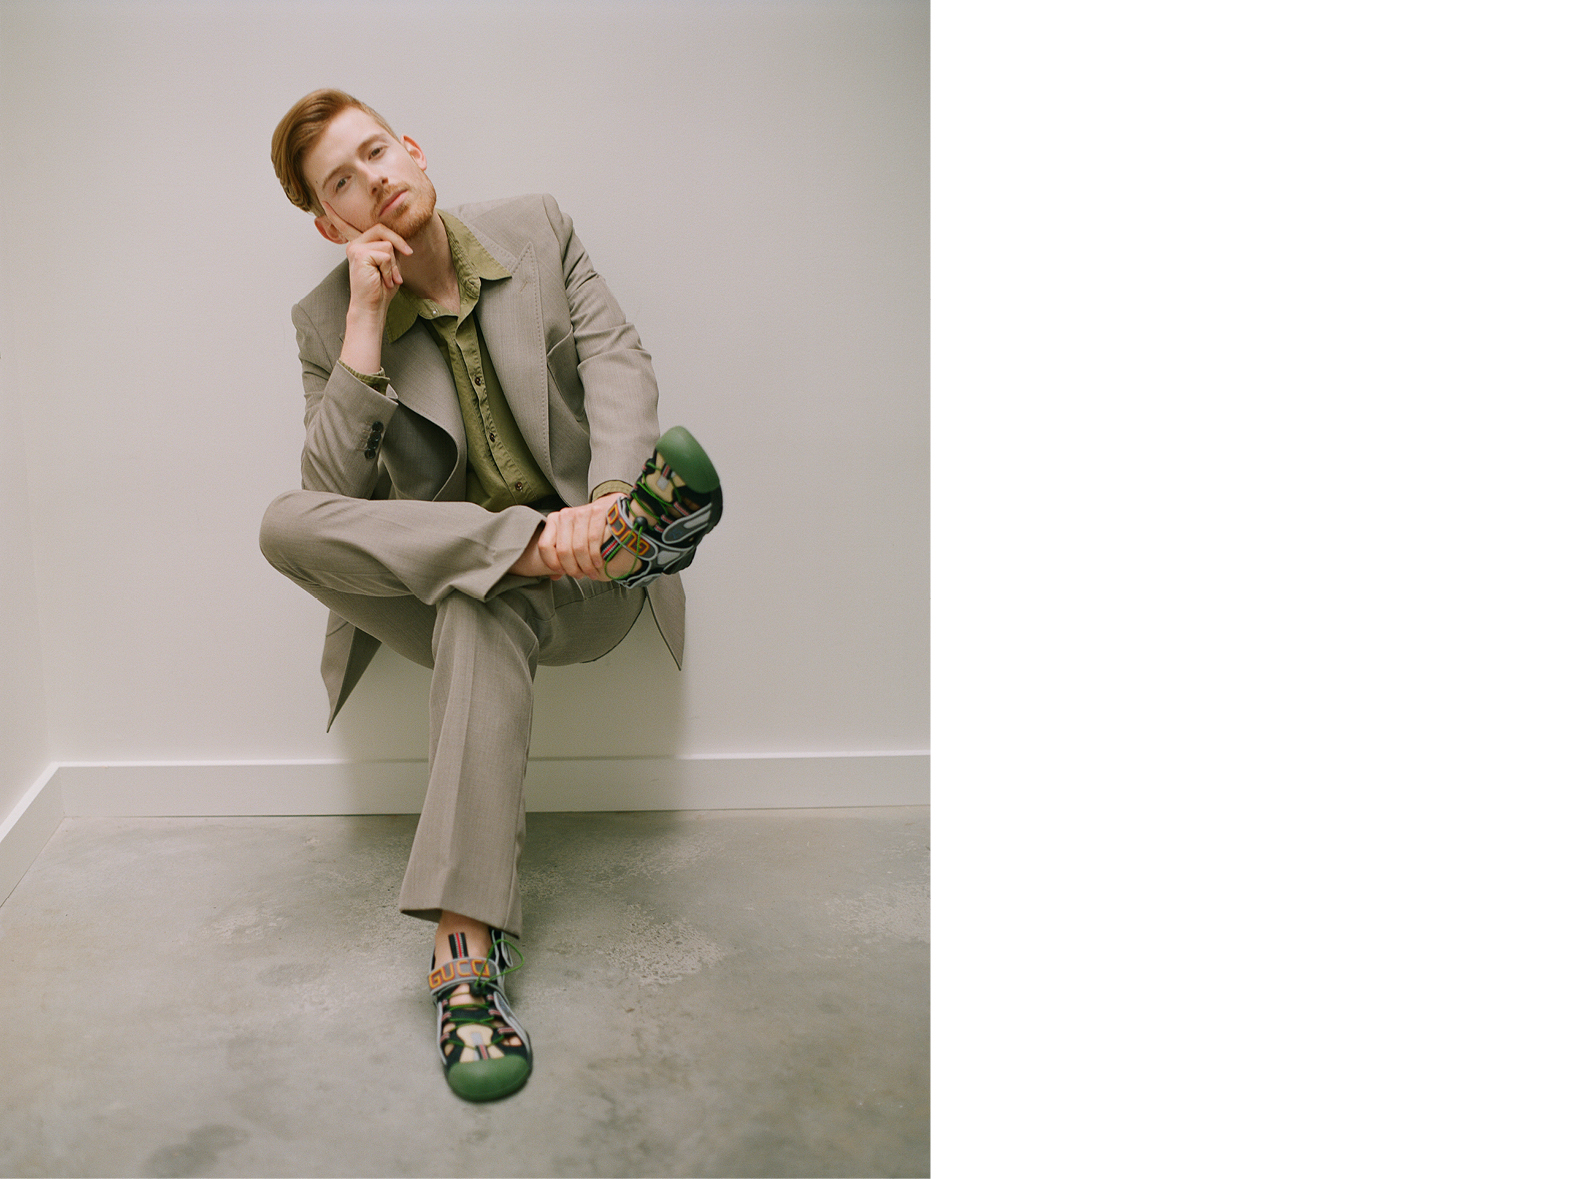 Jacket and trousers by Stella McCartney. Shirt by Sies Marjan. Sandals by Gucci.